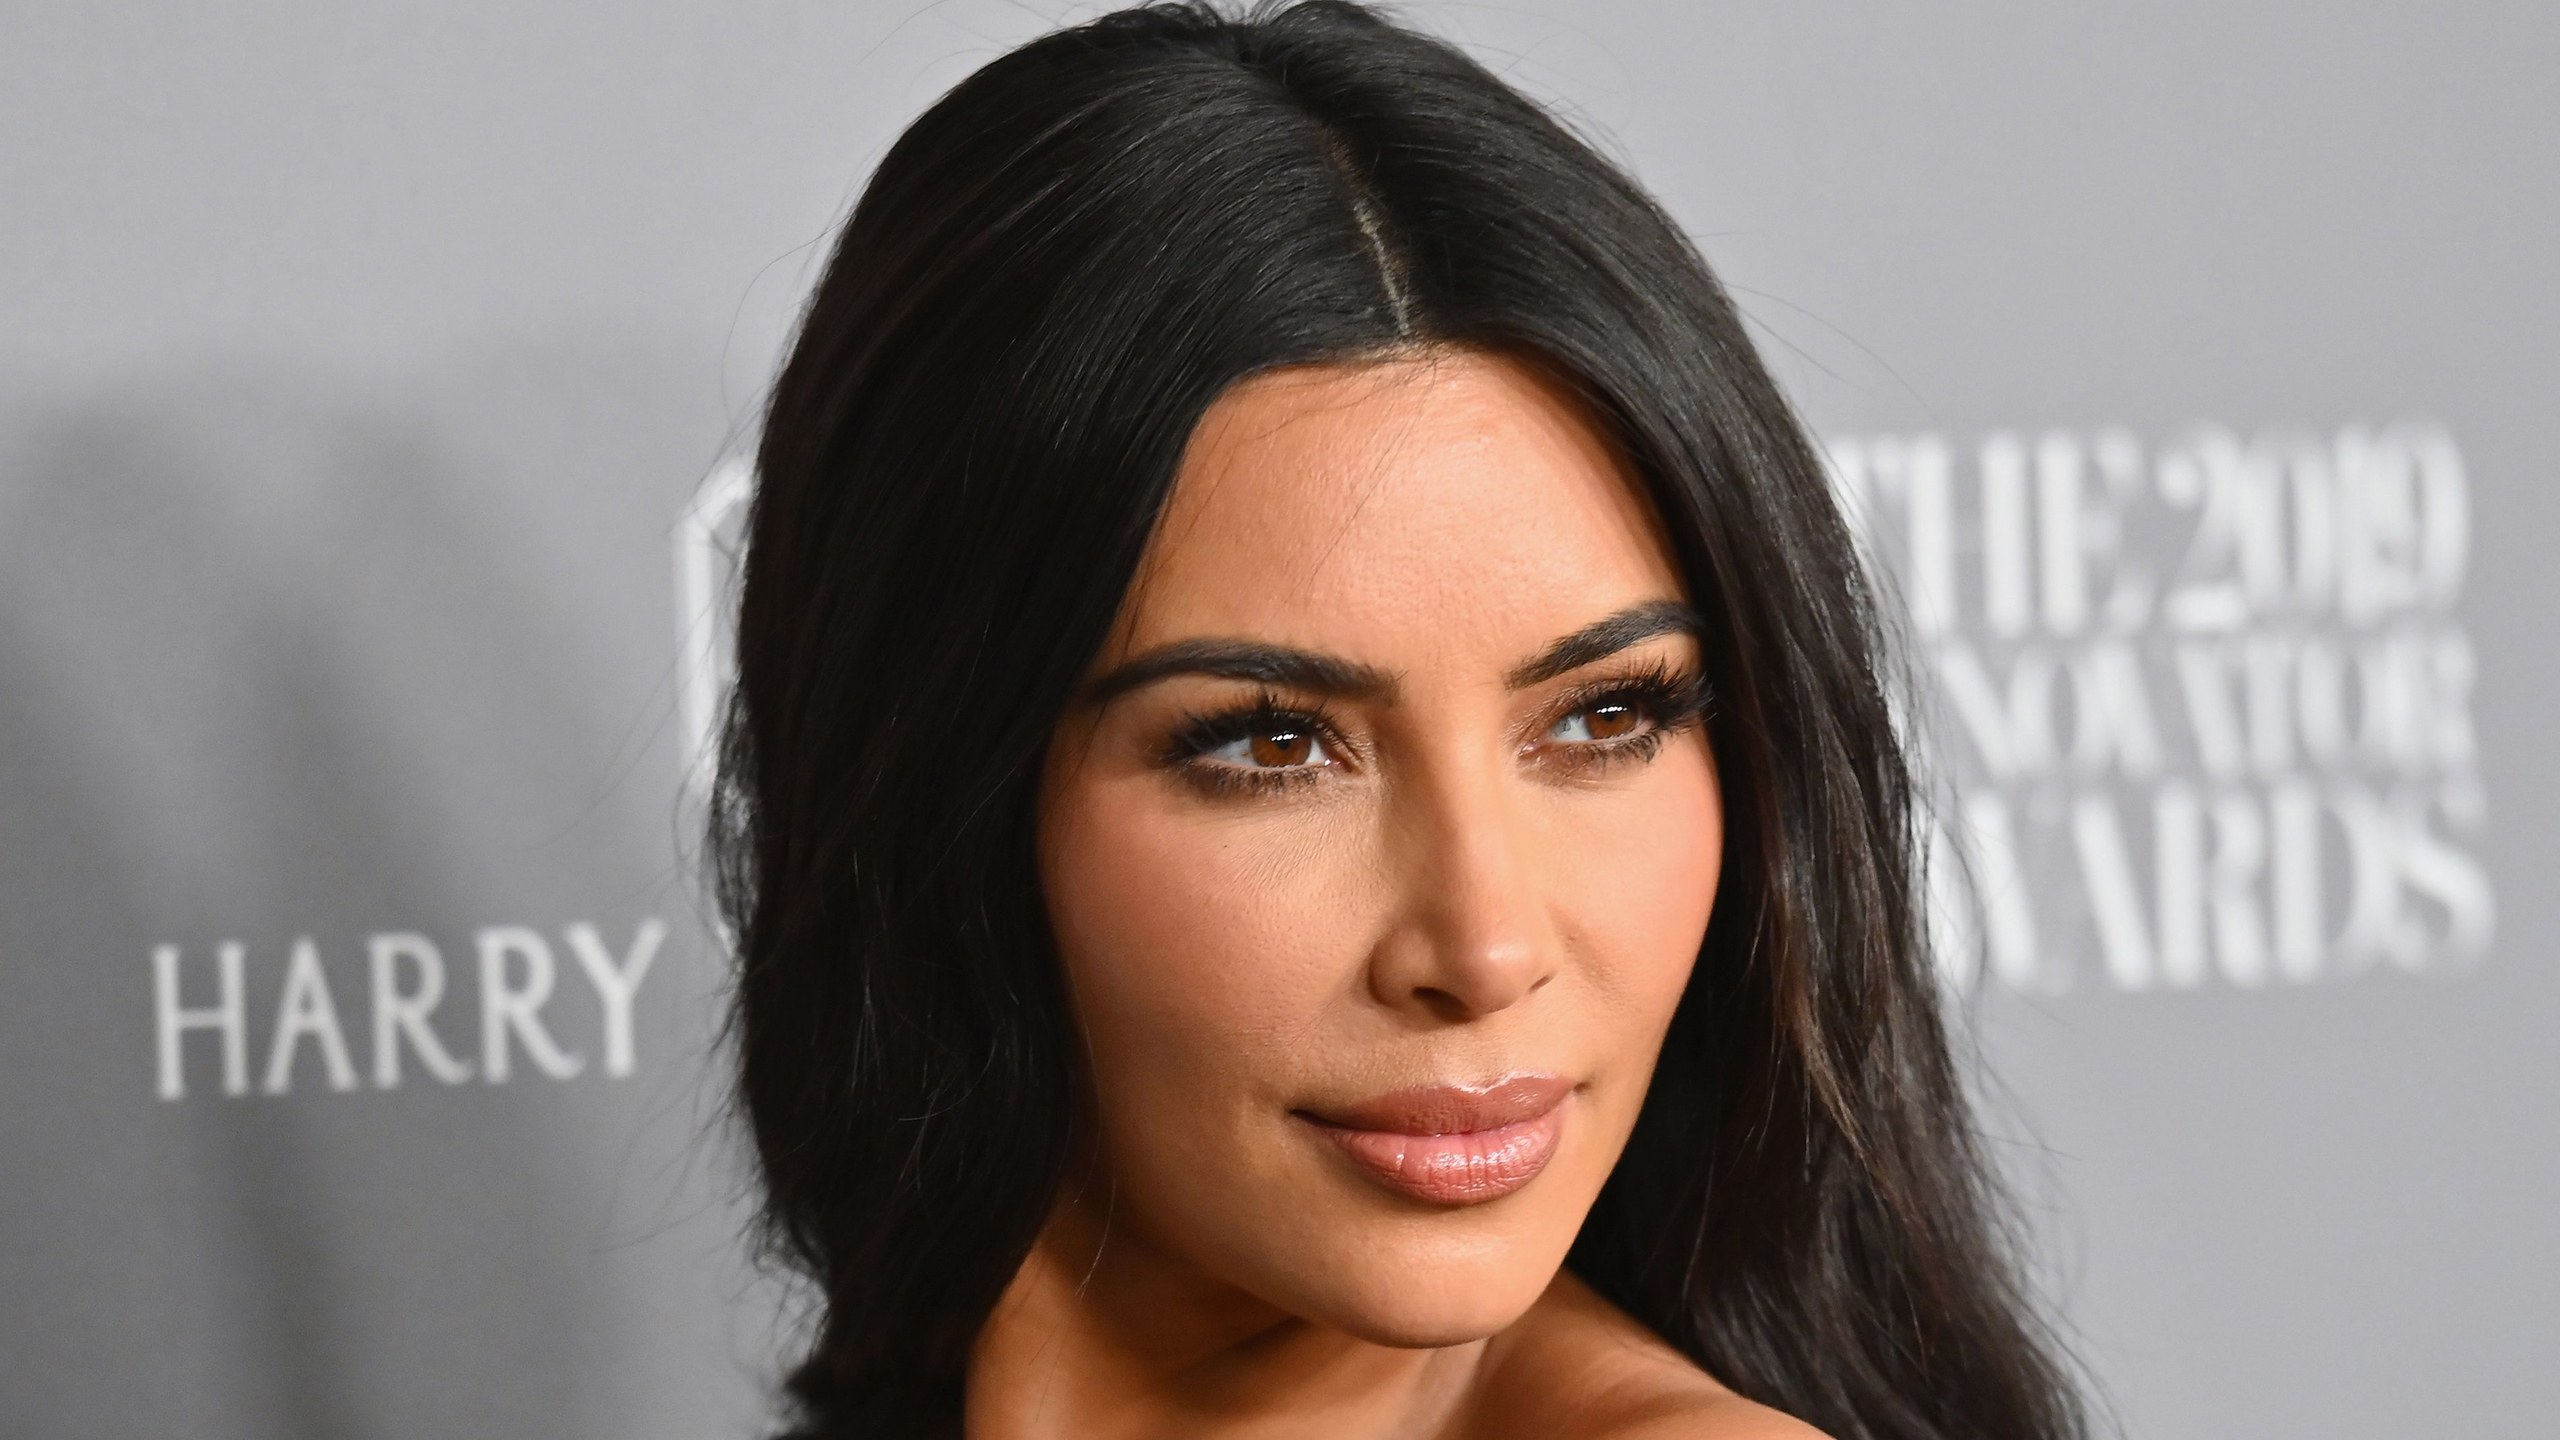 Kim kardashian To Honour Kanye West, Vows To Stop Wearing Sexy Dresses